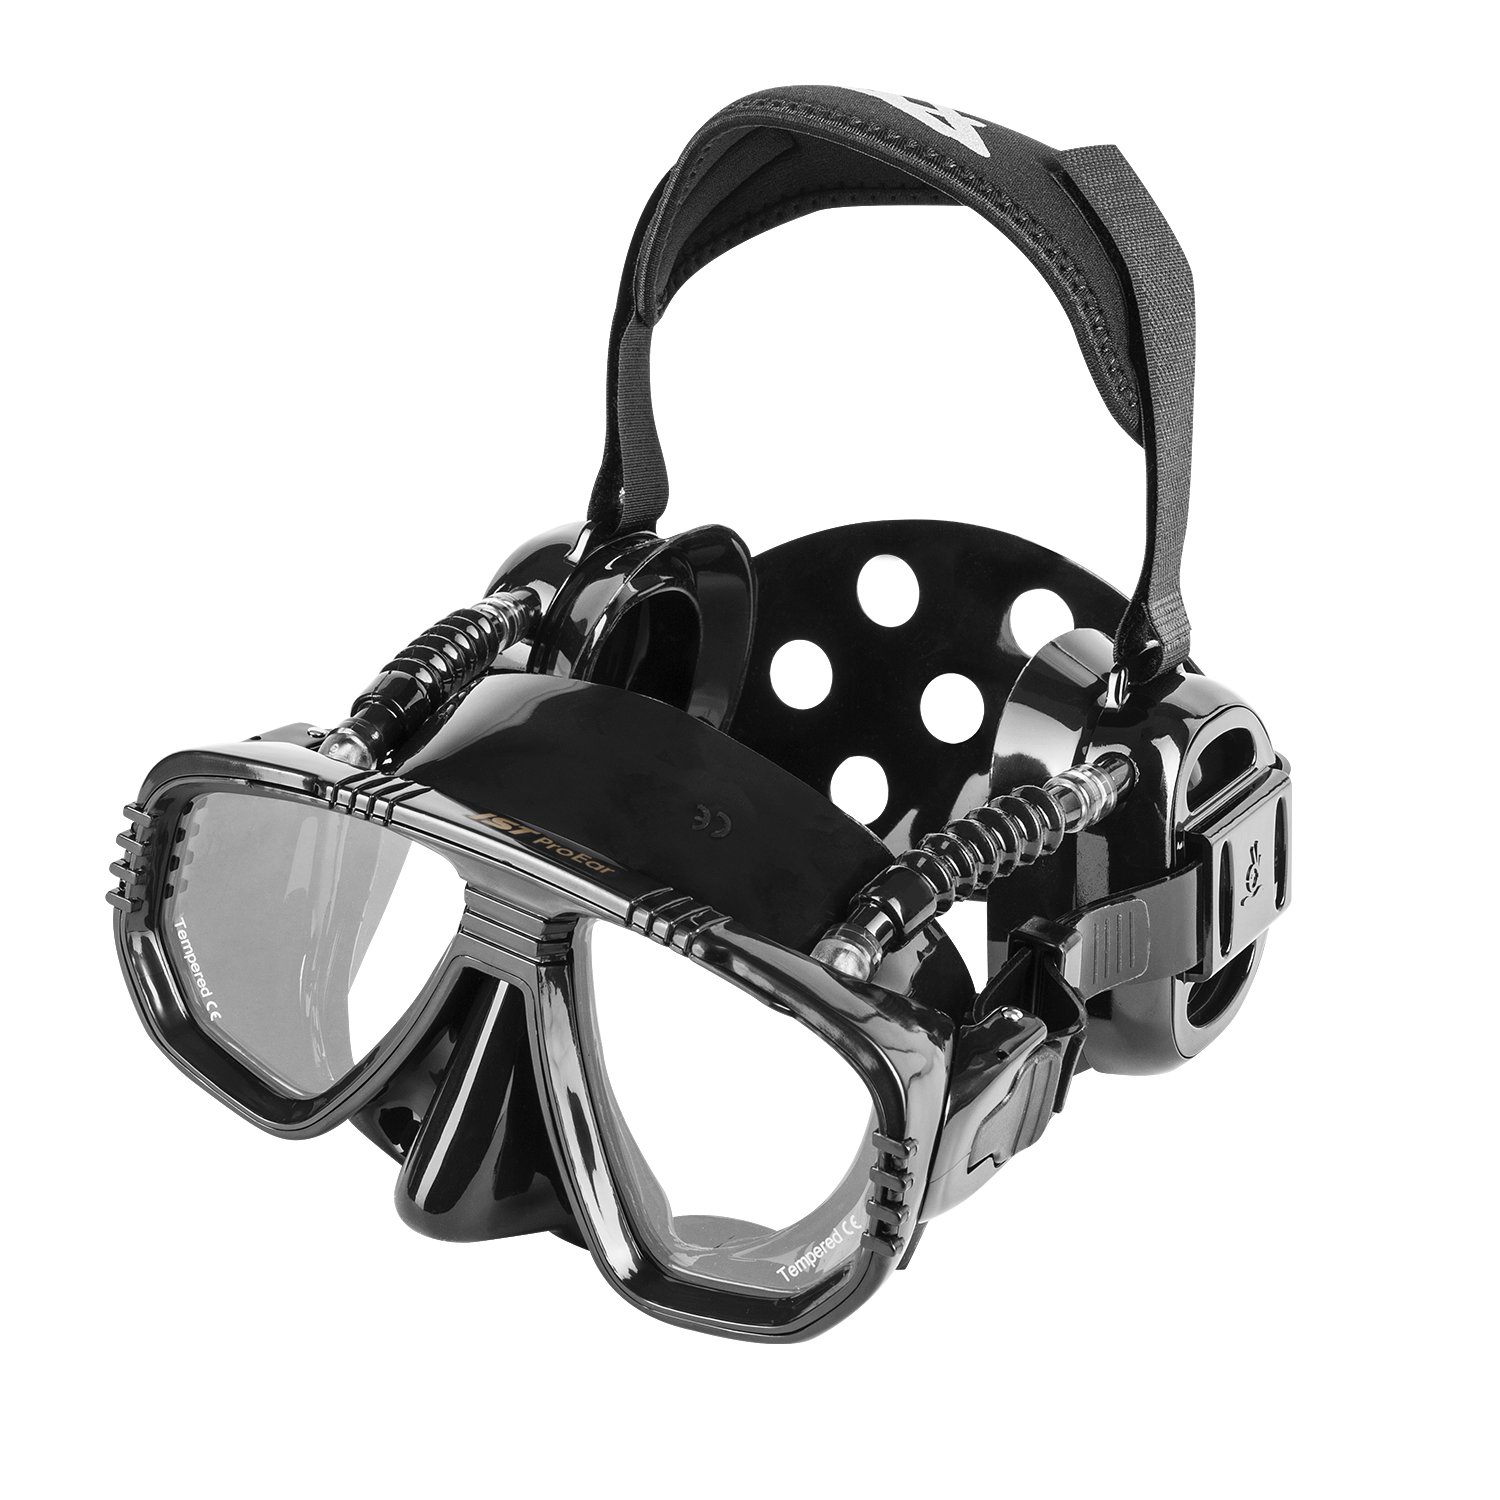 IST ProEar Dive Mask with Ear Covers, Scuba Diving Pressure Equalization Gear, Tempered Glass Twin Lens (Black Silicone) by IST